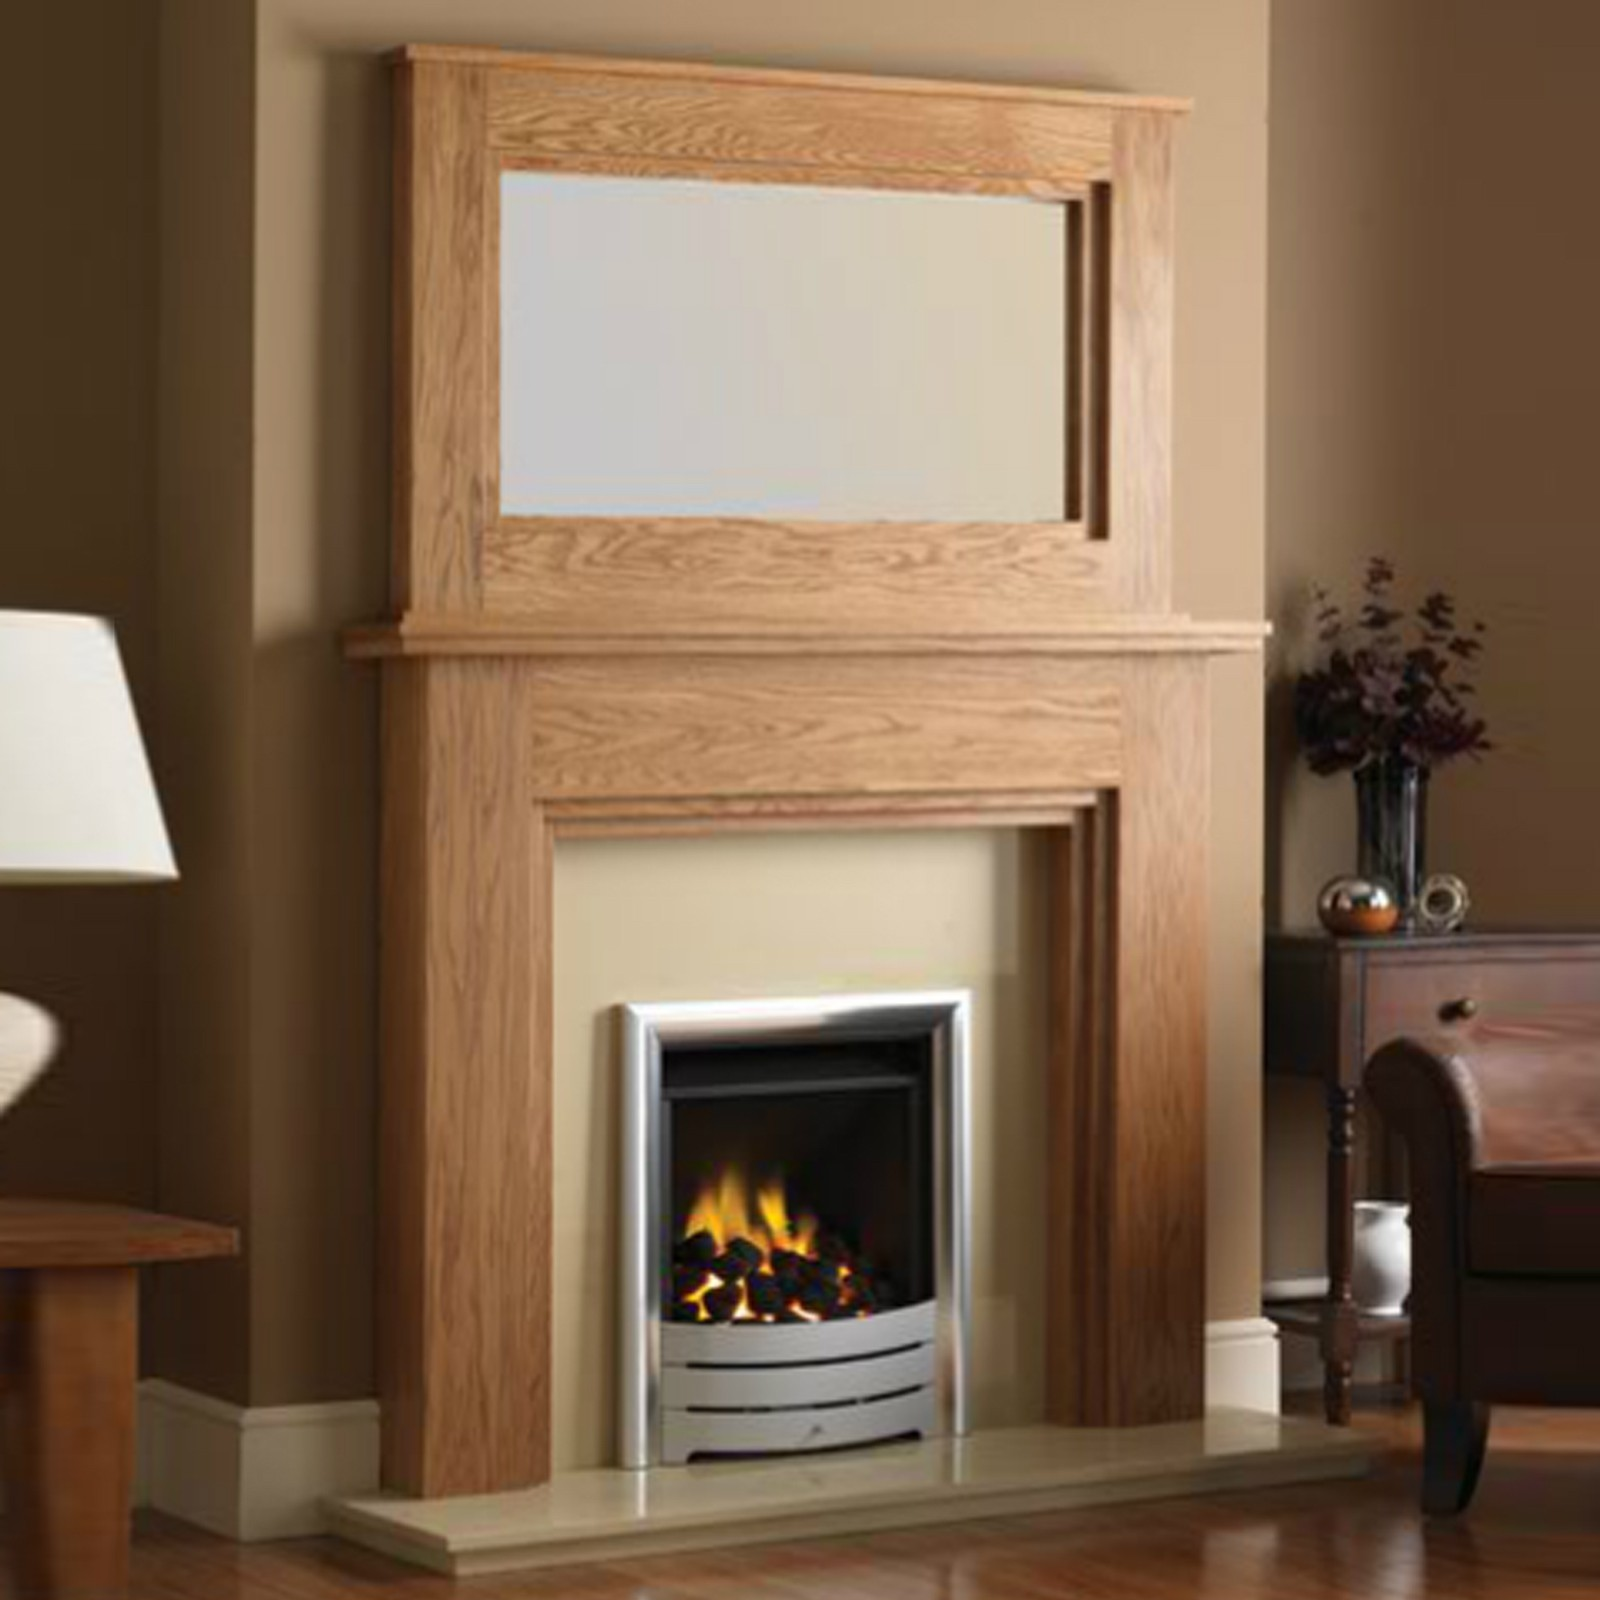 Here at Fireplaces4life we have thousands of fires and fireplaces to choose from and we offer them at fantastic prices.  product